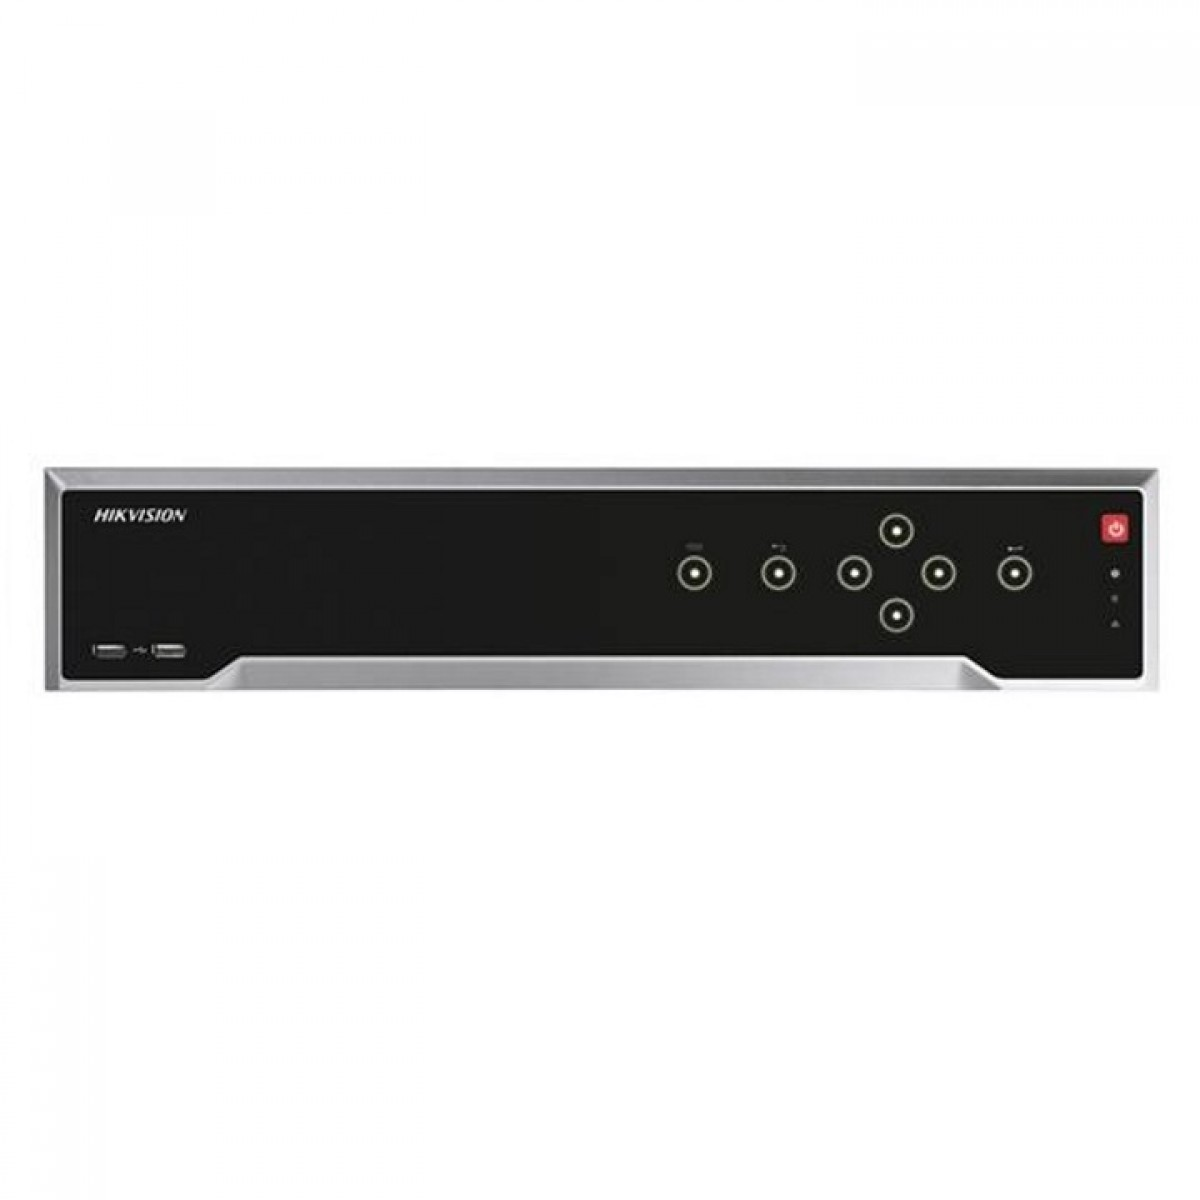 Hikvision DS-7732NI-K4/16P 4K UHD 32 Channel 16 POE 8MP NVR Full Ultra HD Alarm Network Video Recorder 1.5U CCTV